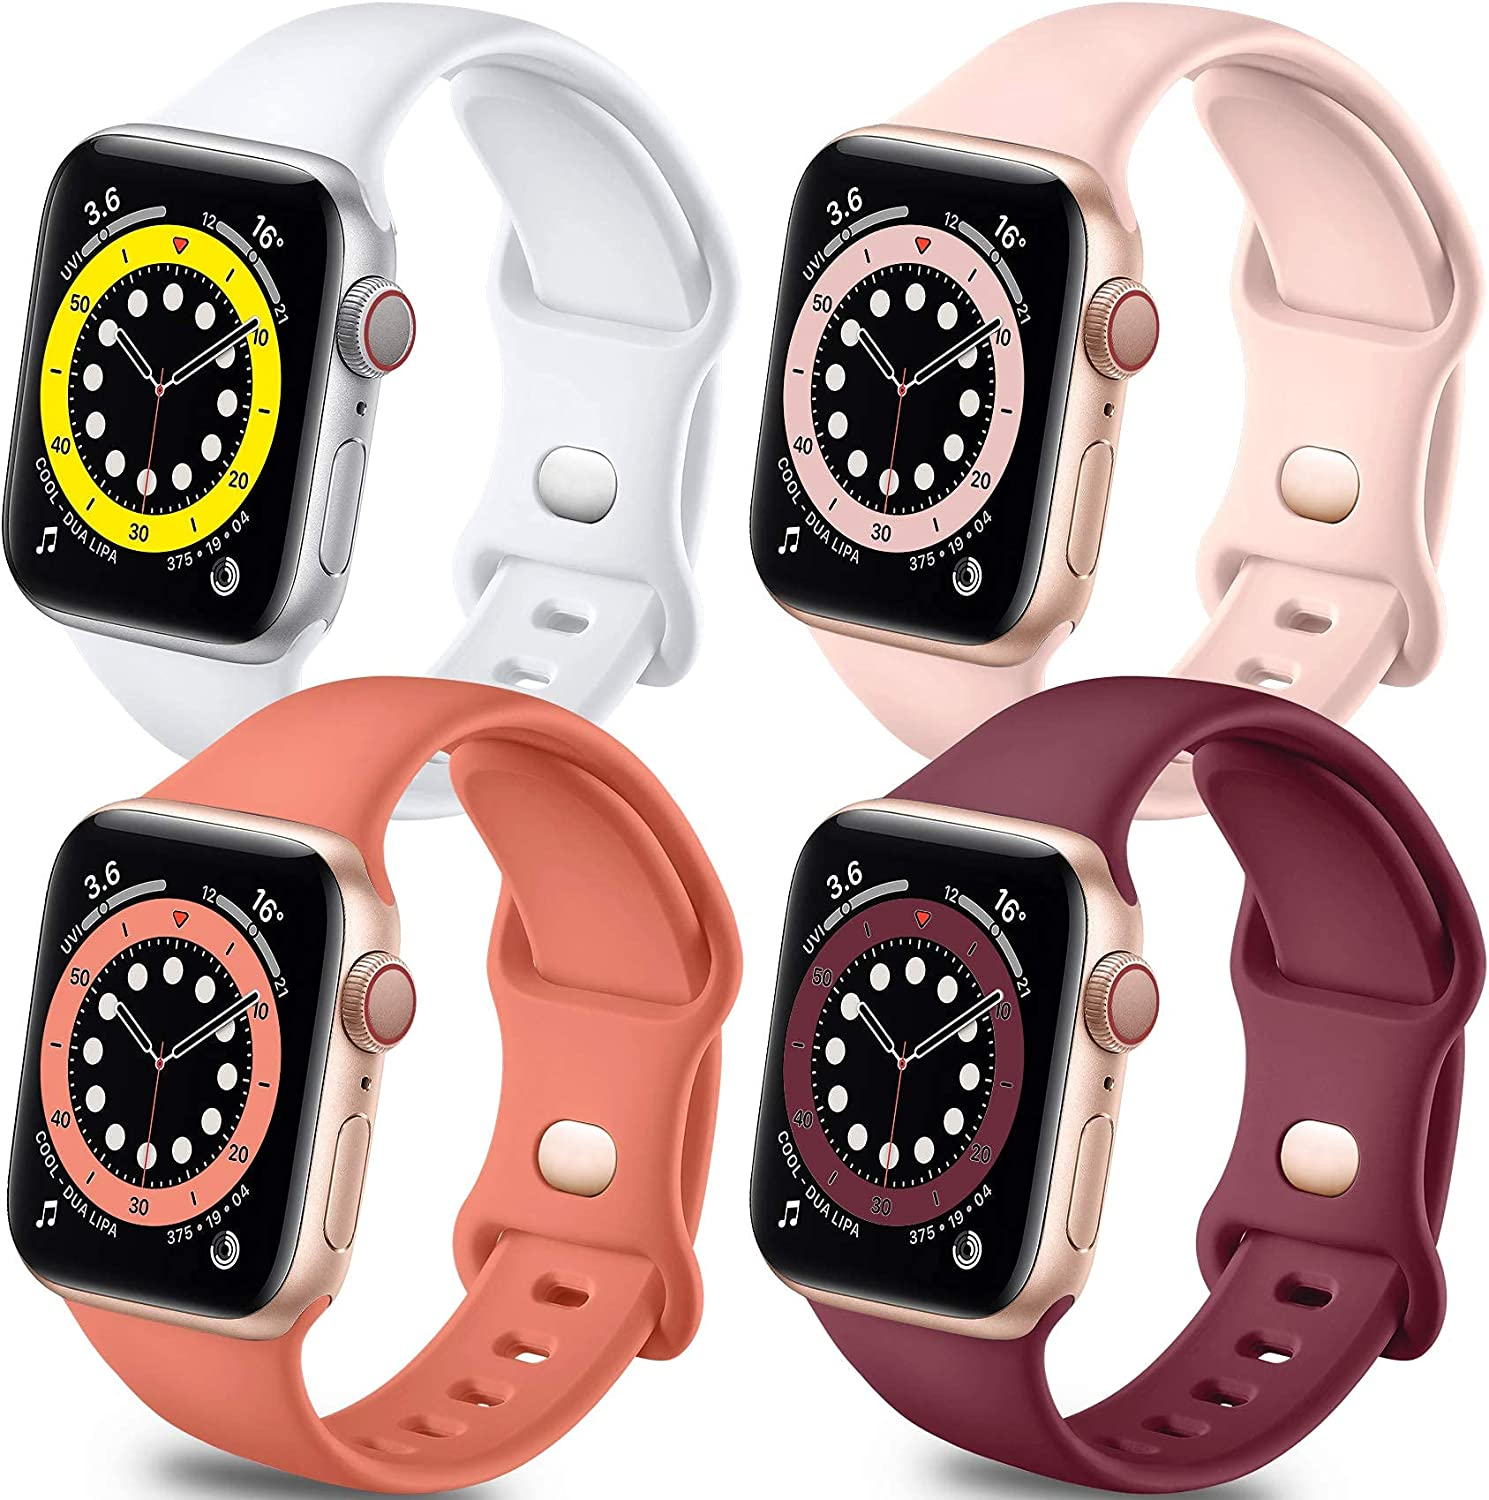 Getino Compatible with Apple Watch Band 40mm 38mm 42mm 44mm iWatch SE Series 6 5 4 3 2 1 for Women Men, Stylish Durable Soft Silicone Sport Bands, 4 Pack